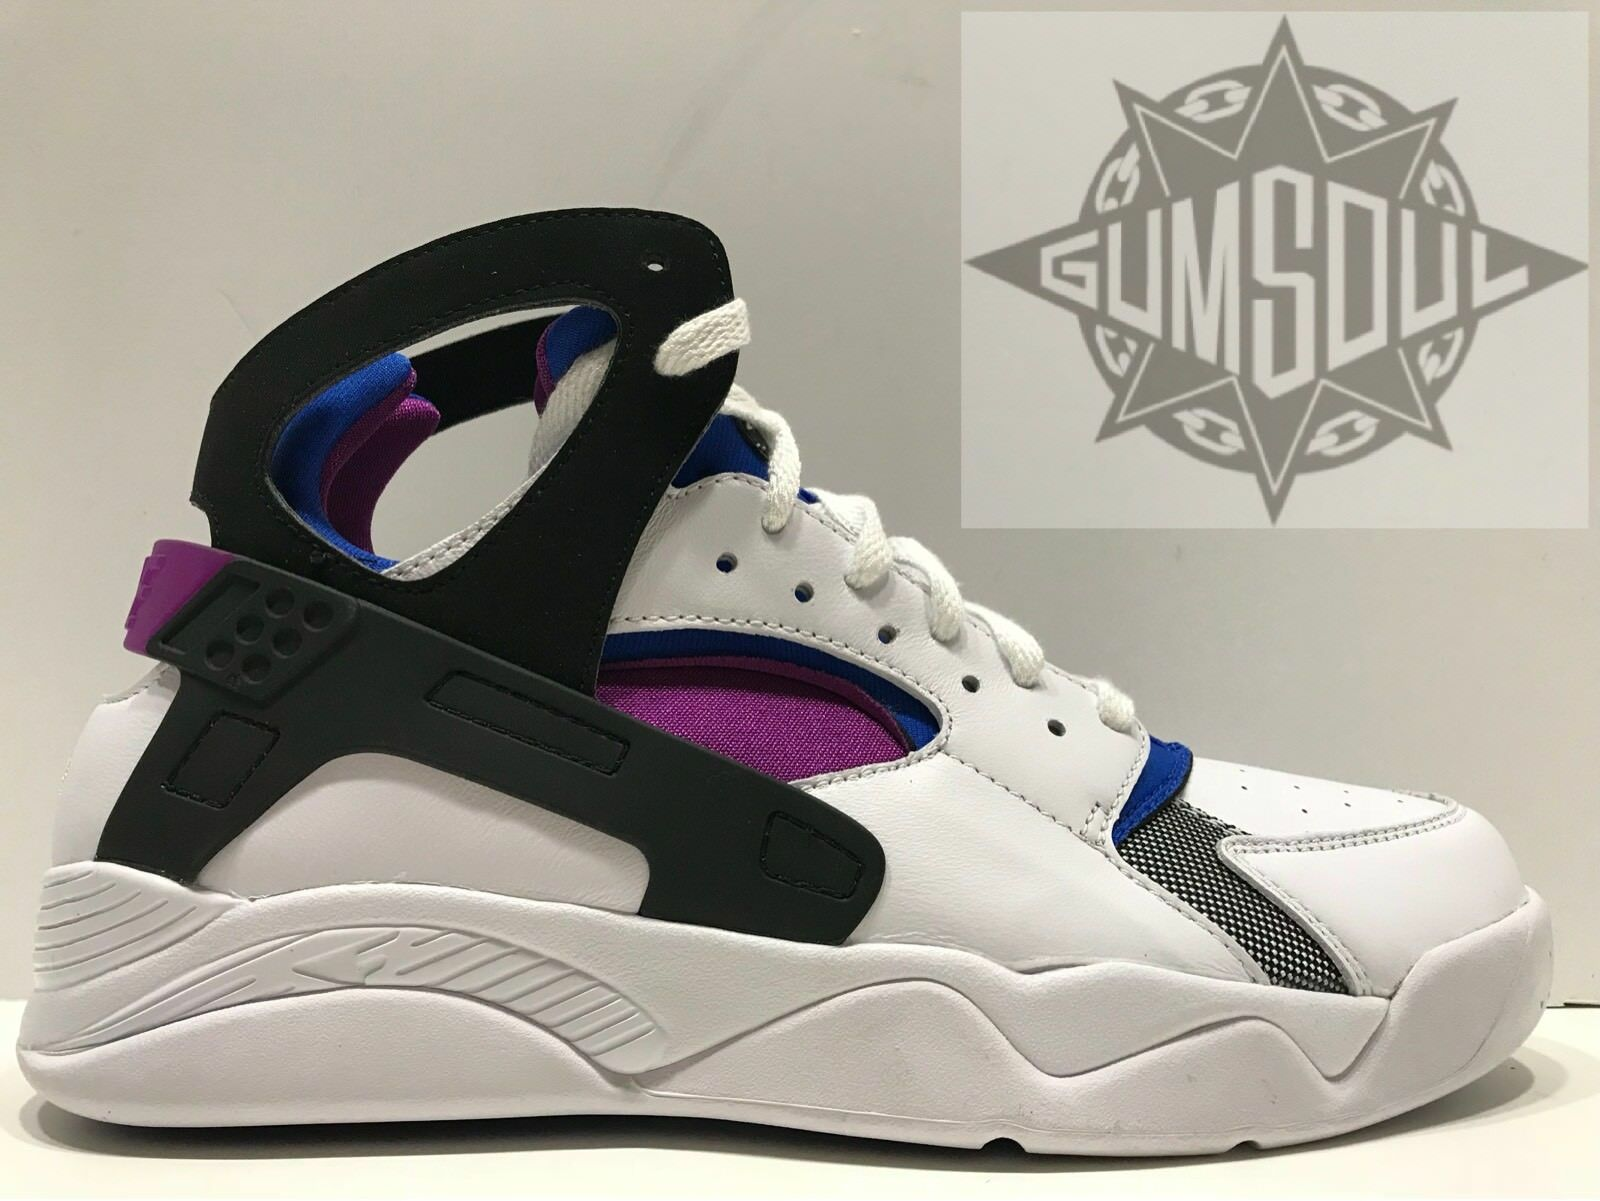 NIKE AIR FLIGHT HUARACHE PRM QS FAB 5 MICHIGAN WHITE BERRY 686203 100 sz 9